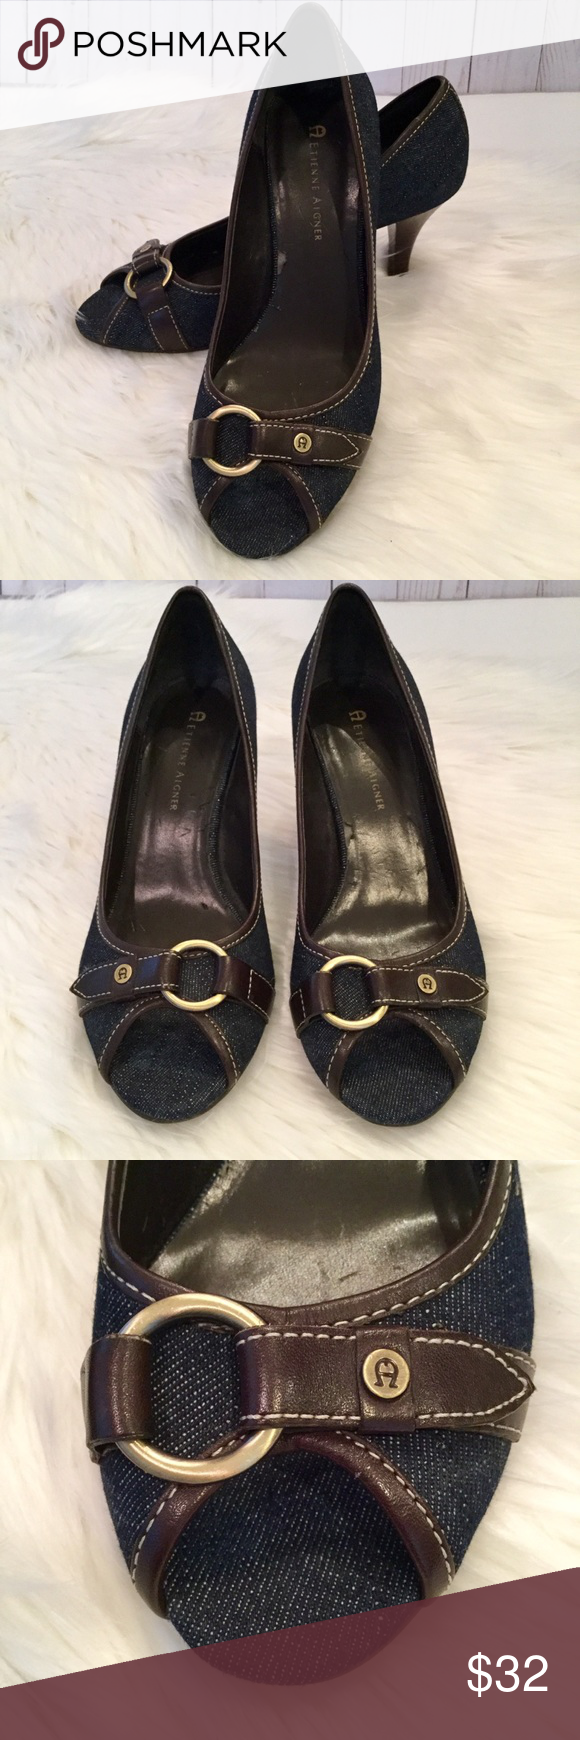 "Aigner Denim and Leather Peep Toe Heels, 6, EUC Adorable denim heels with genuine leather brown trim and peep toe. Heel is a comfortable 2.75"" height. Scuff on right heel and some wear on inside of shoes. Otherwise very clean and like new. Etienne Aigner Shoes Heels"